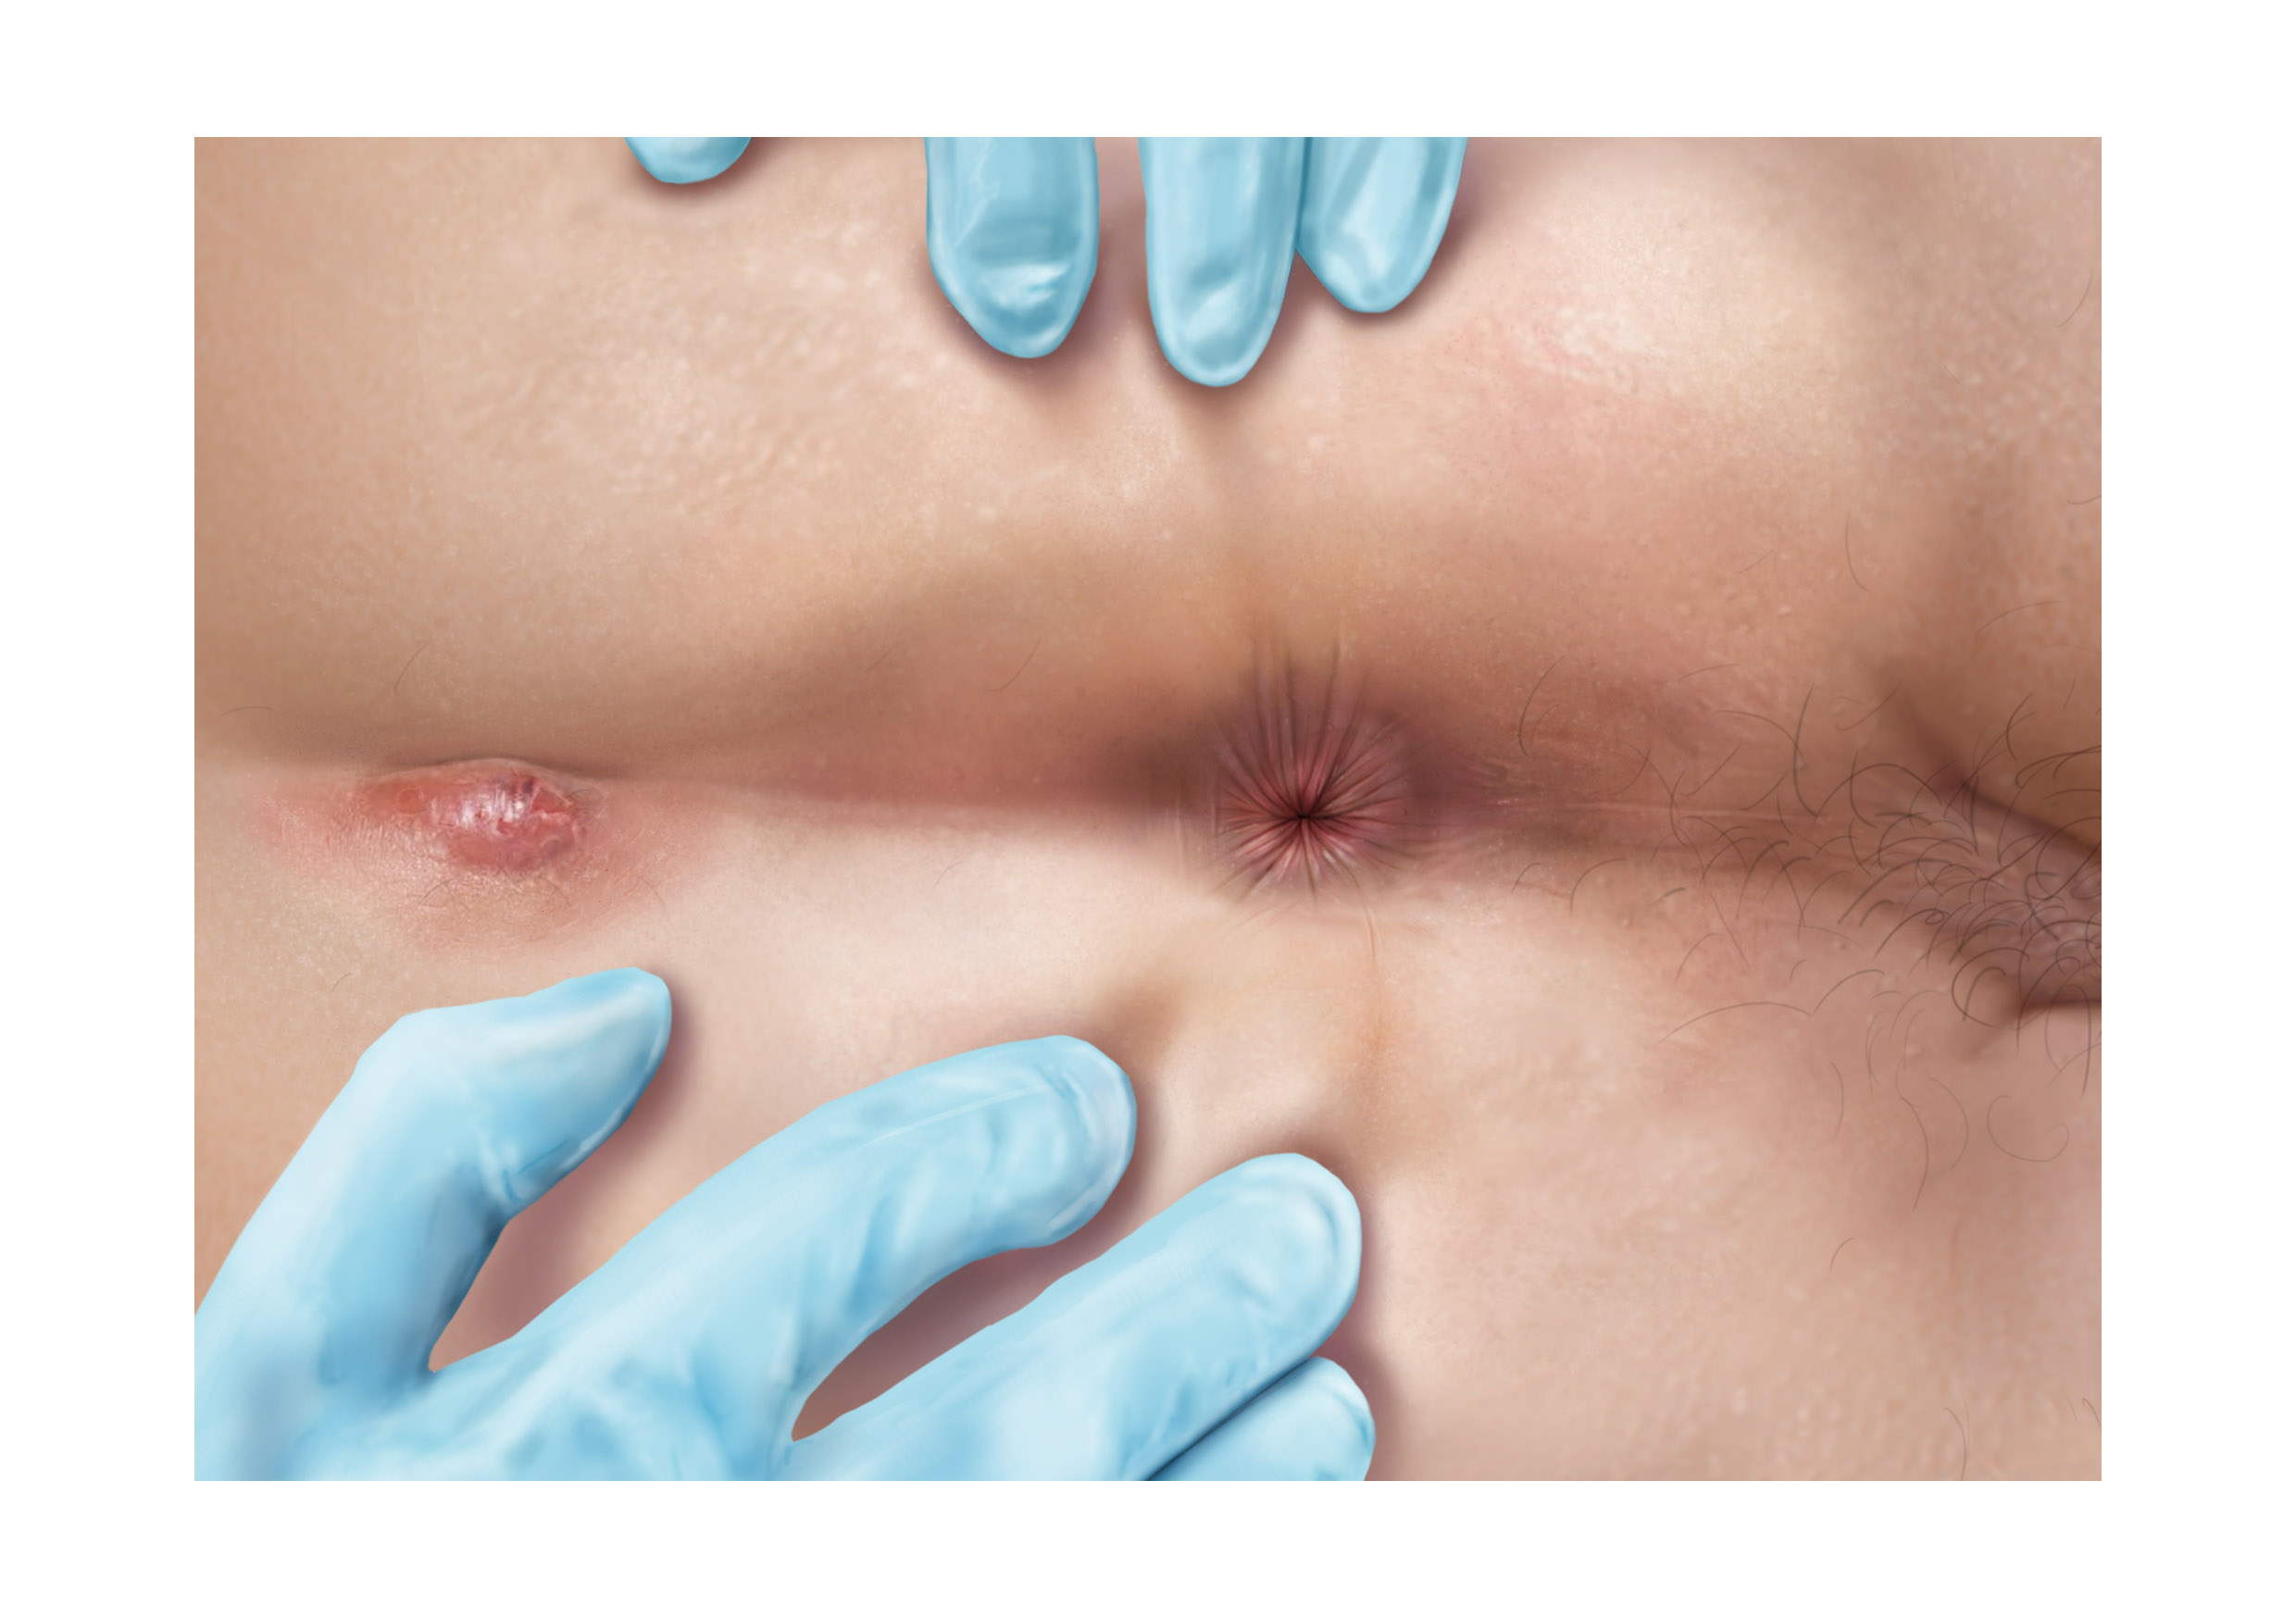 Illustrations of various diseases which can be found in rectal examinations - abscess